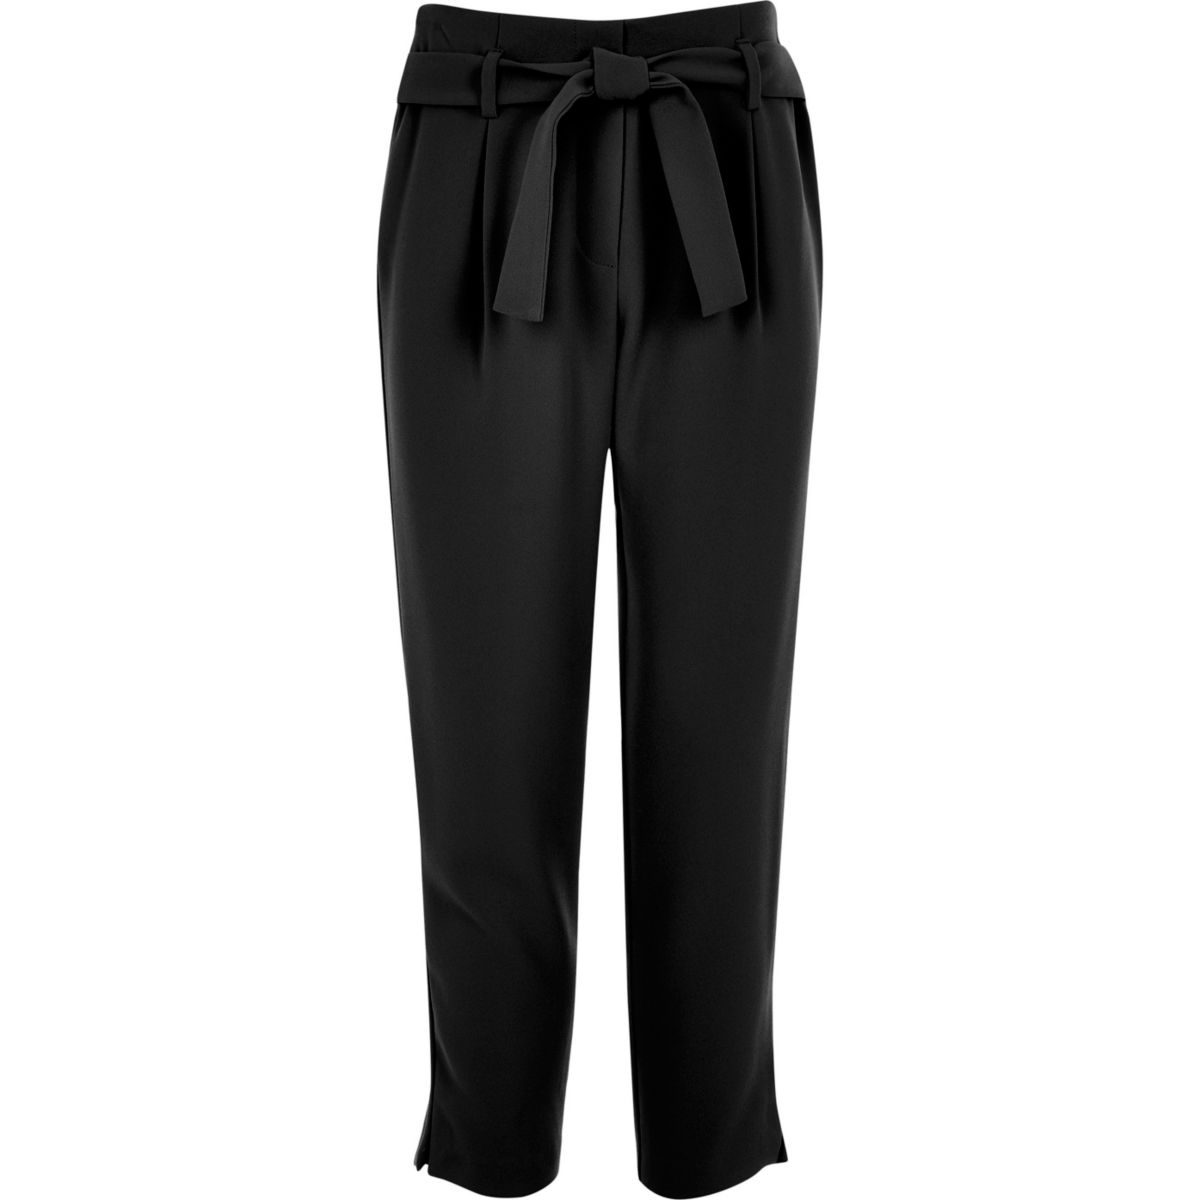 Girls black tie waist pants